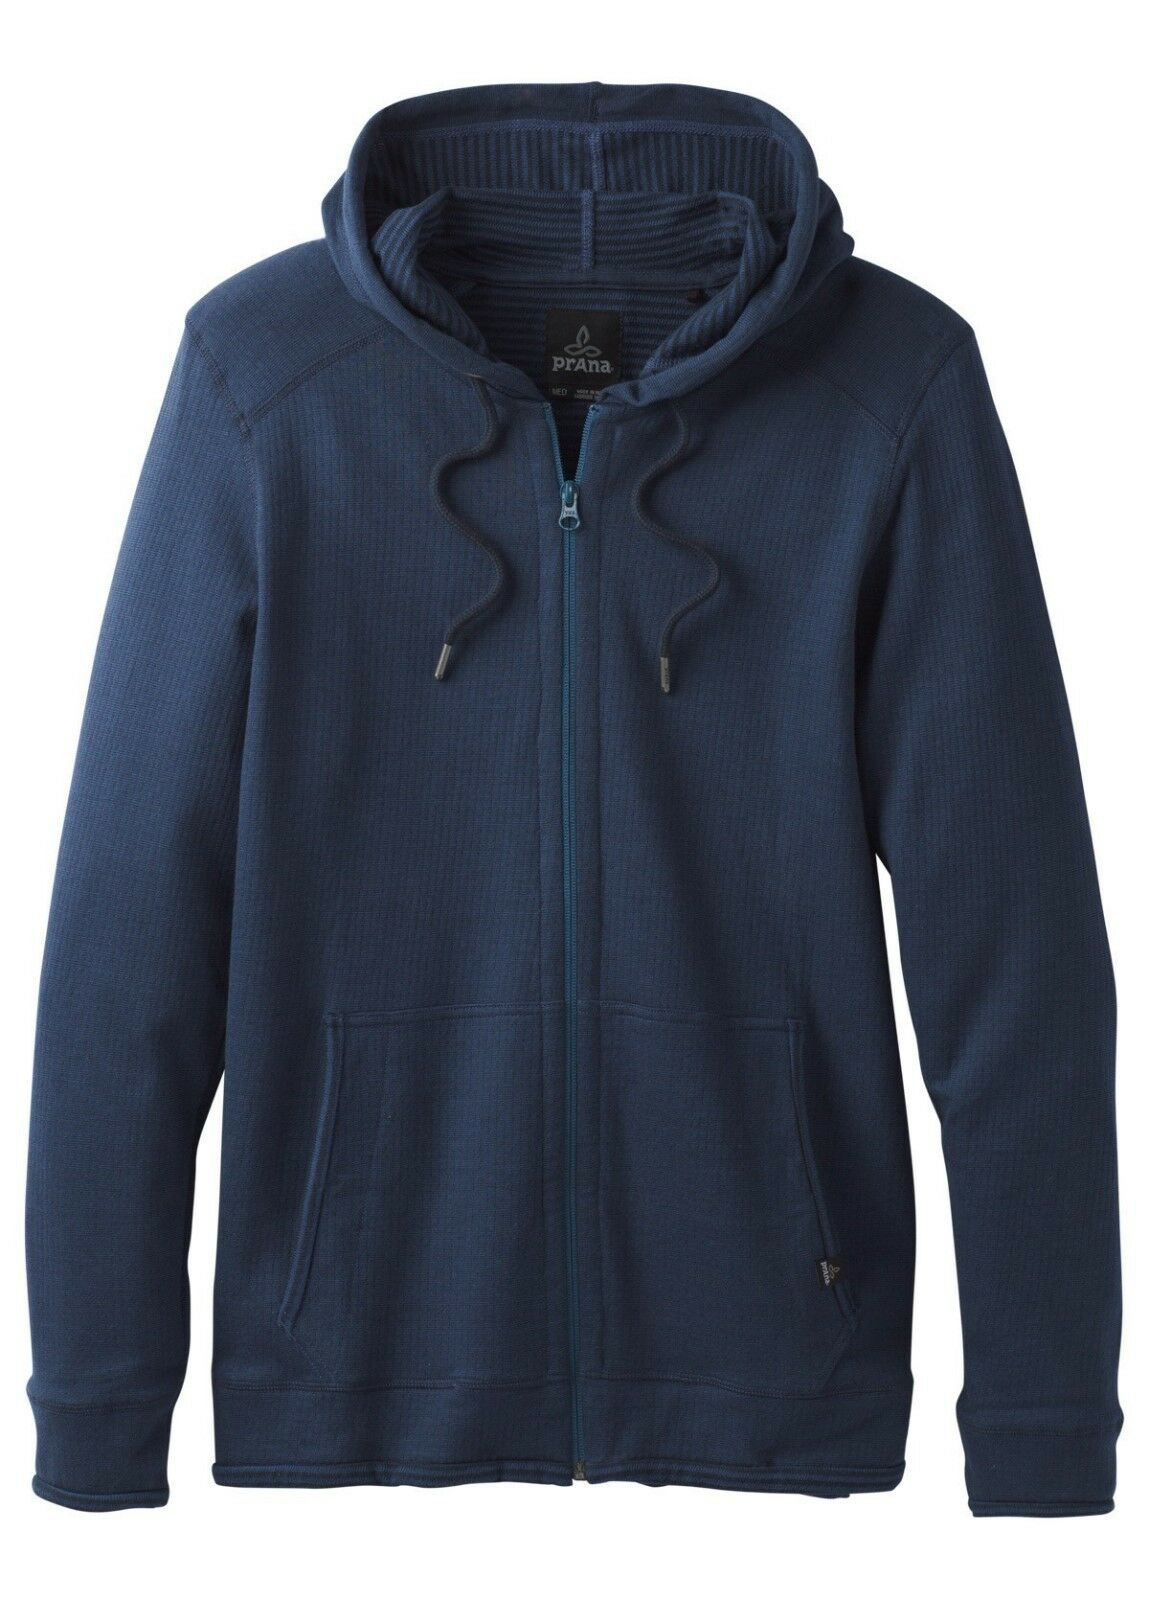 Prana Smith Full Zip Hoodie Men's Hoody for Men Equinox bluee